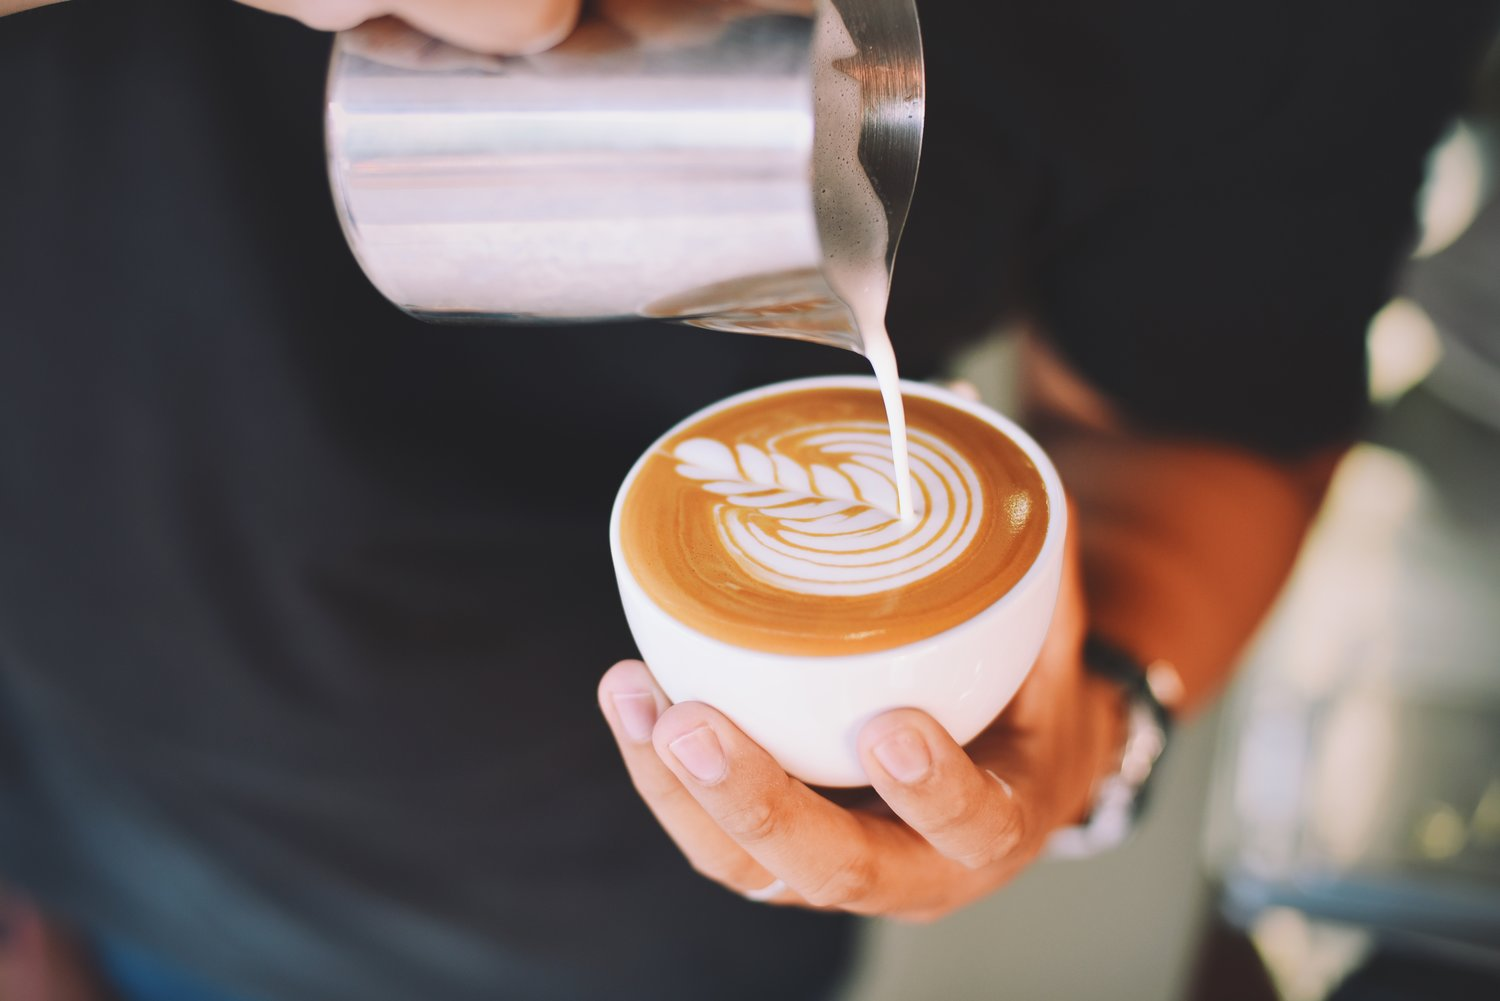 Local Coffee Shops in Lynchburg, VA - We complied a list of Local Coffee Shops in and around the Lynchburg area. Whenever you need to sit back, sip, and relax make sure to check out one of these places!